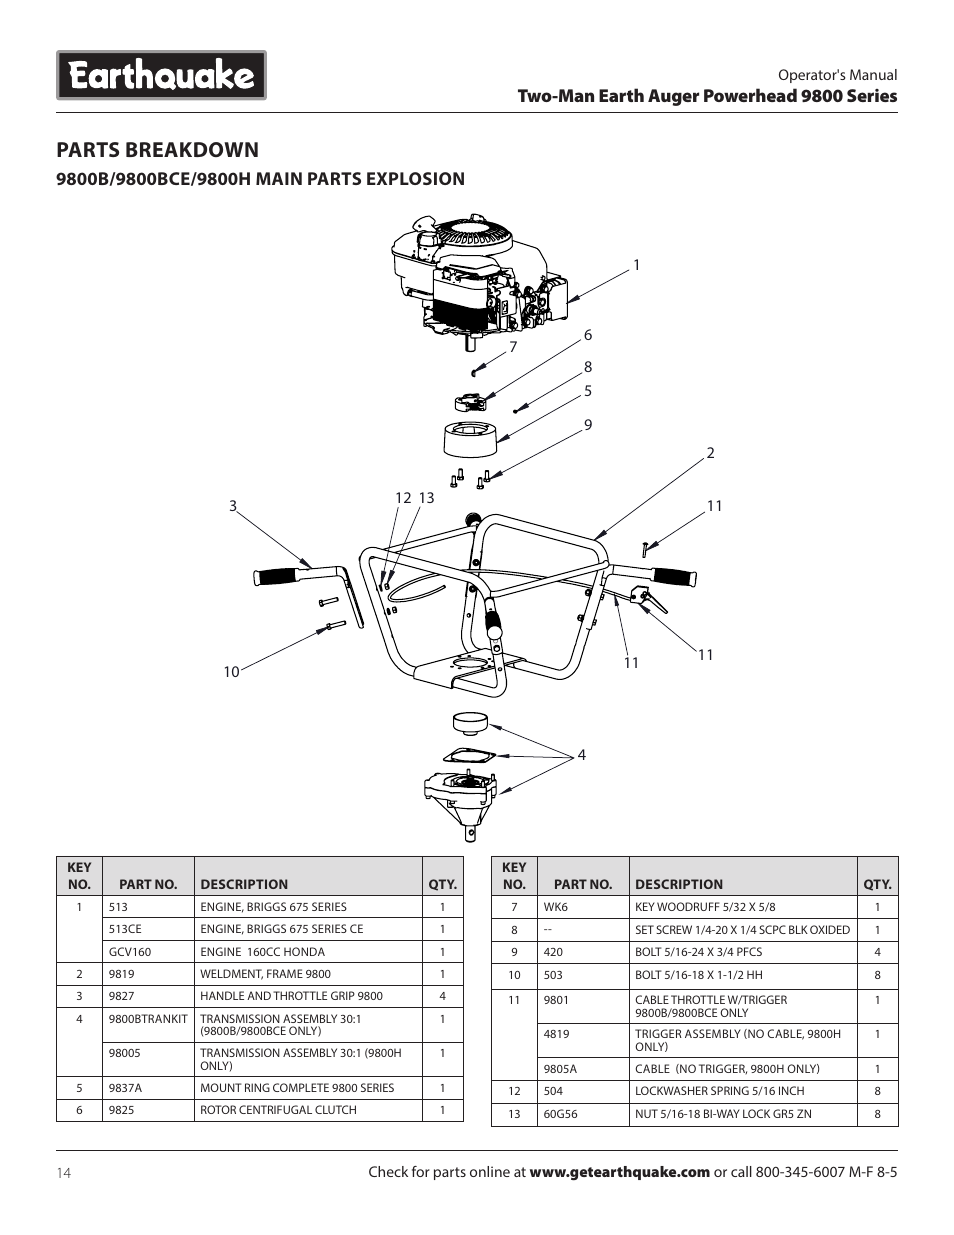 Parts breakdown, Two-man earth auger powerhead 9800 series